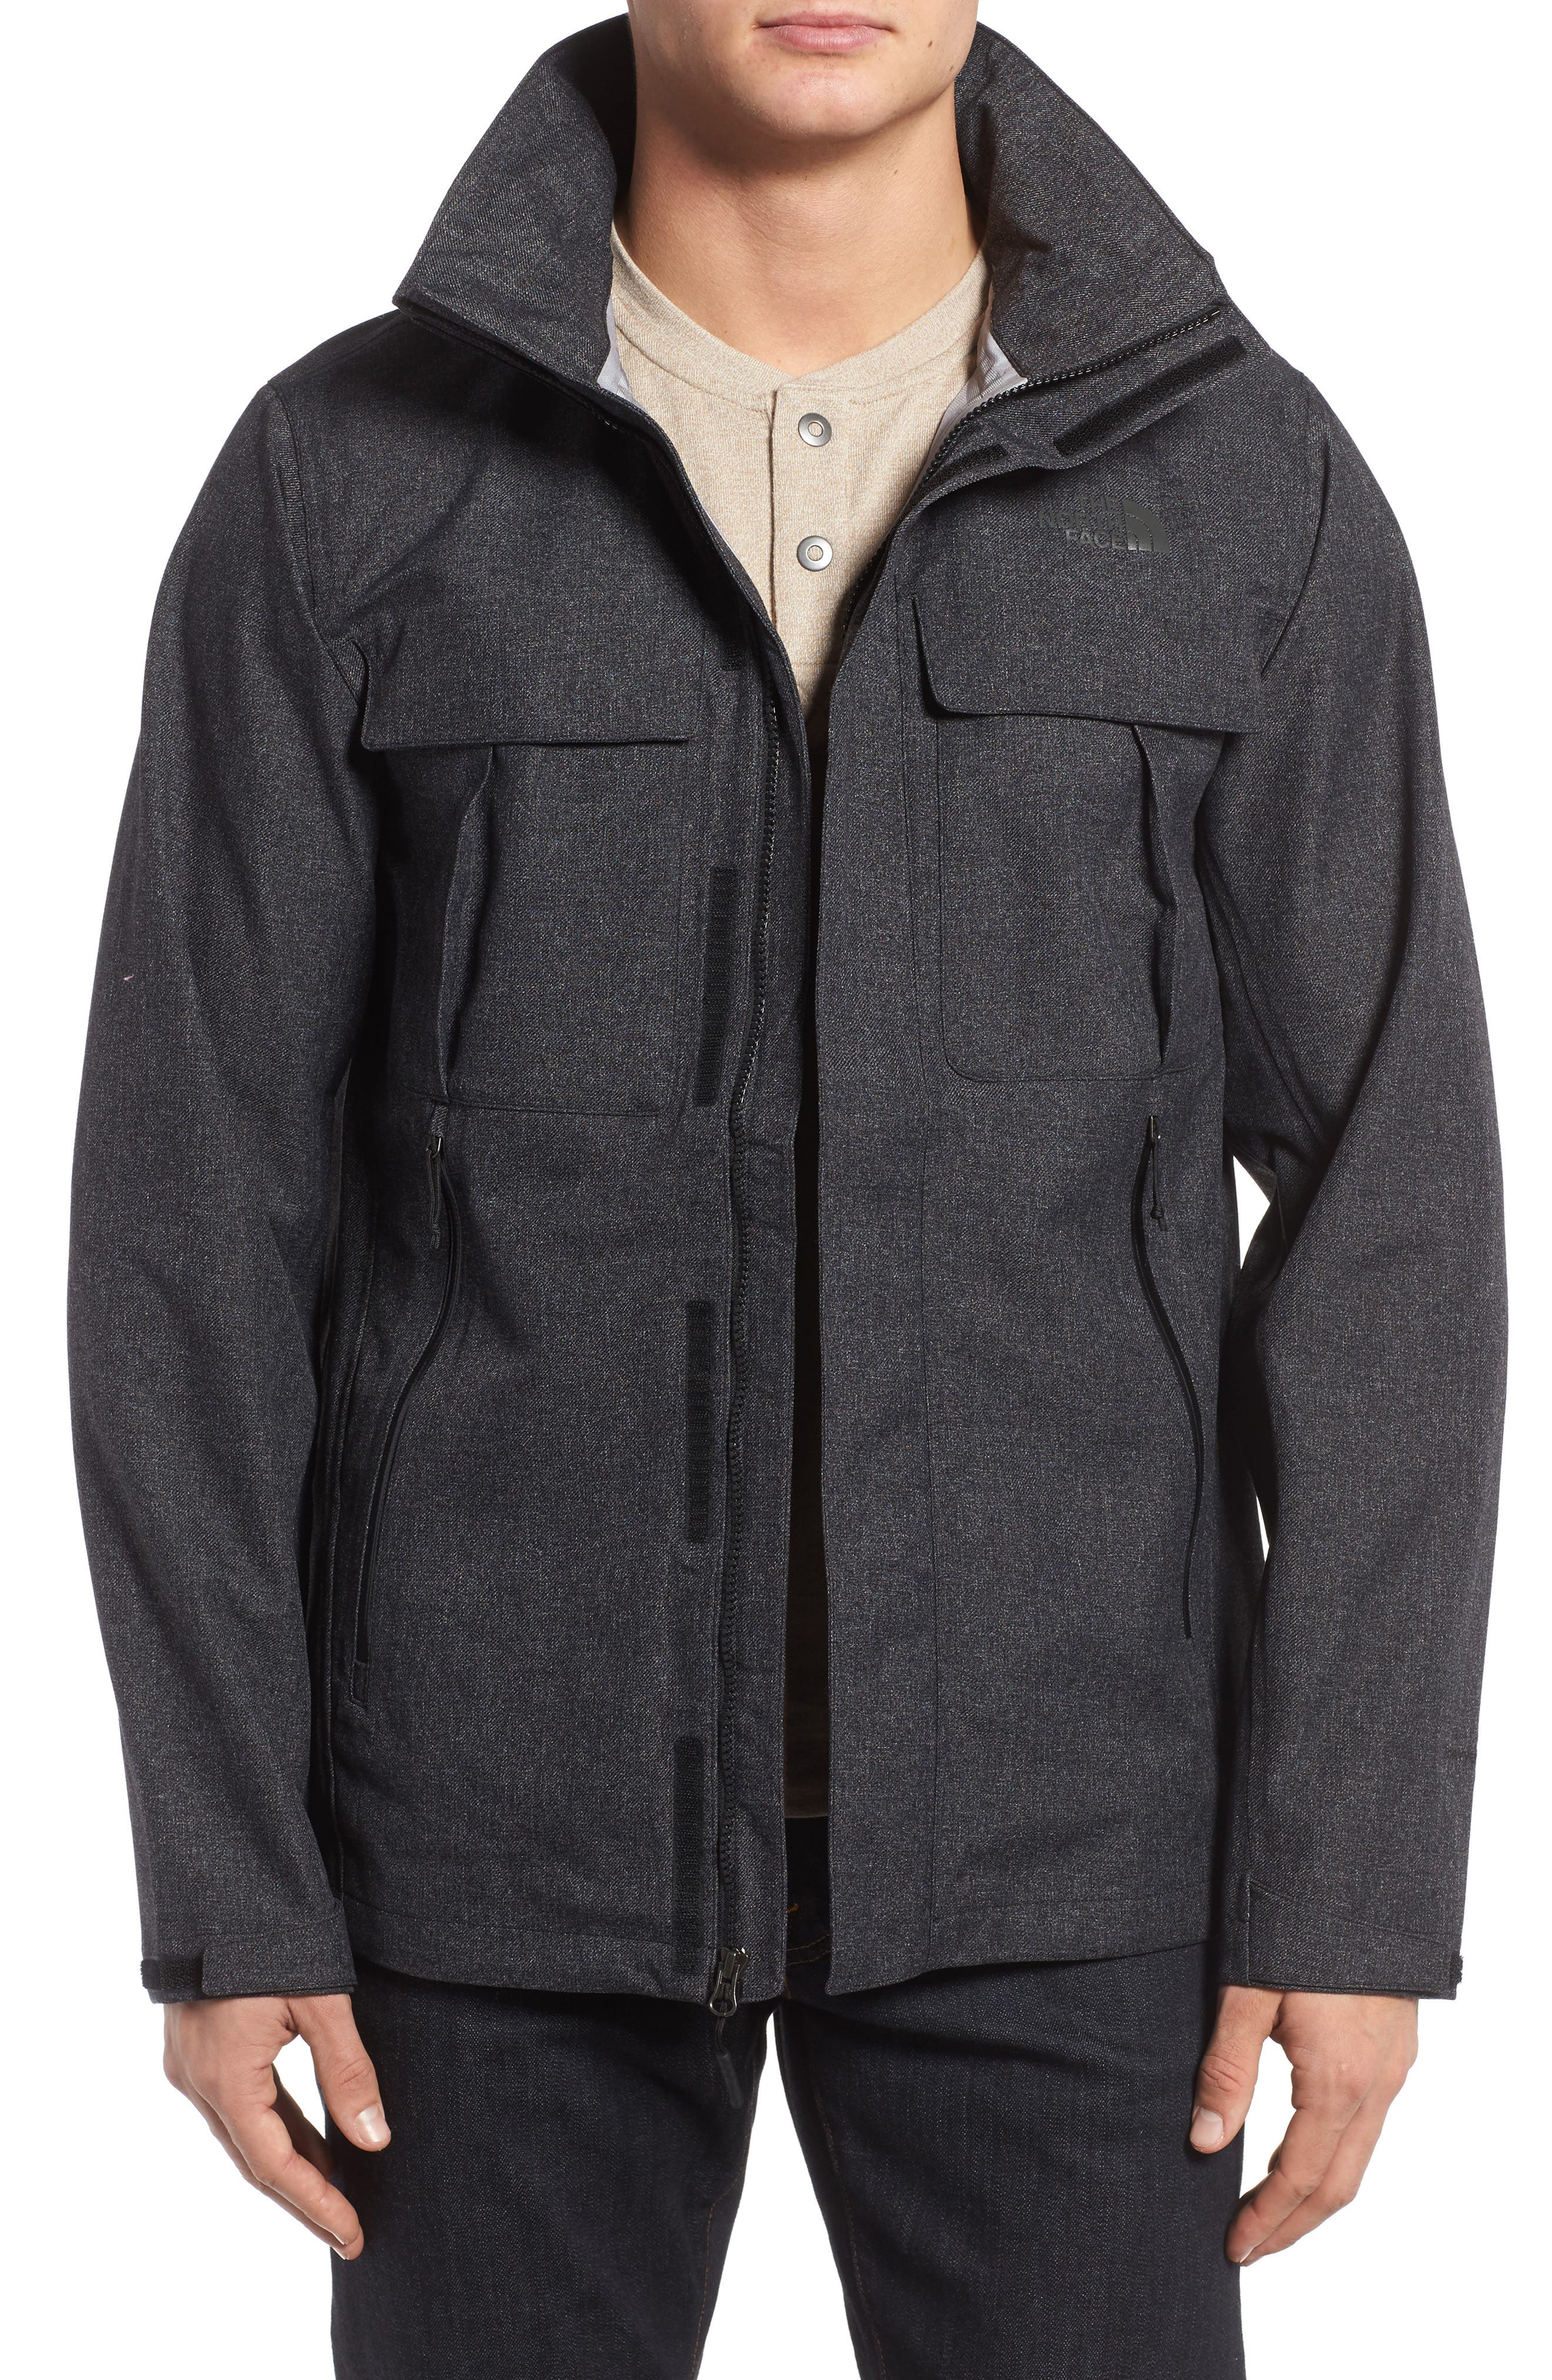 The North Face Kassler DryVent Field Jacket